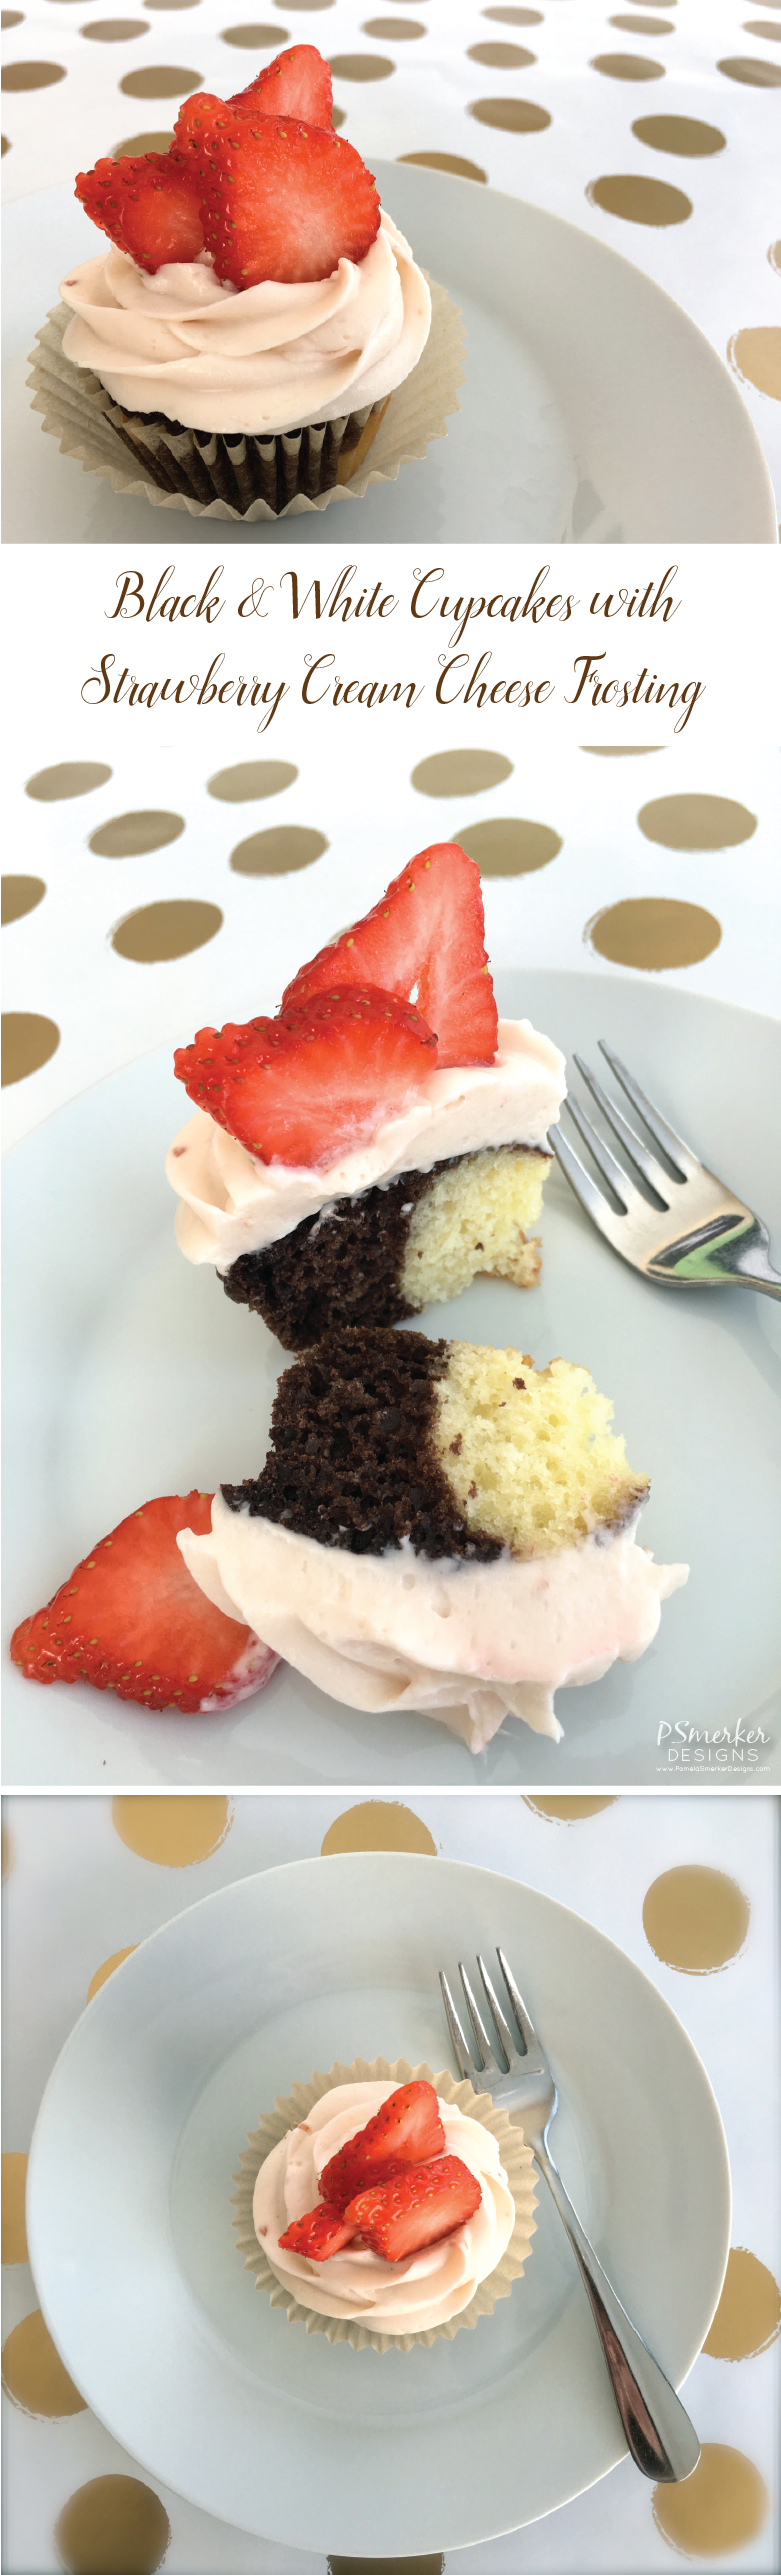 Black and White Cupcakes with Strawberry Cream Cheese Frosting Recipe by Pamela Smerker Desigsn